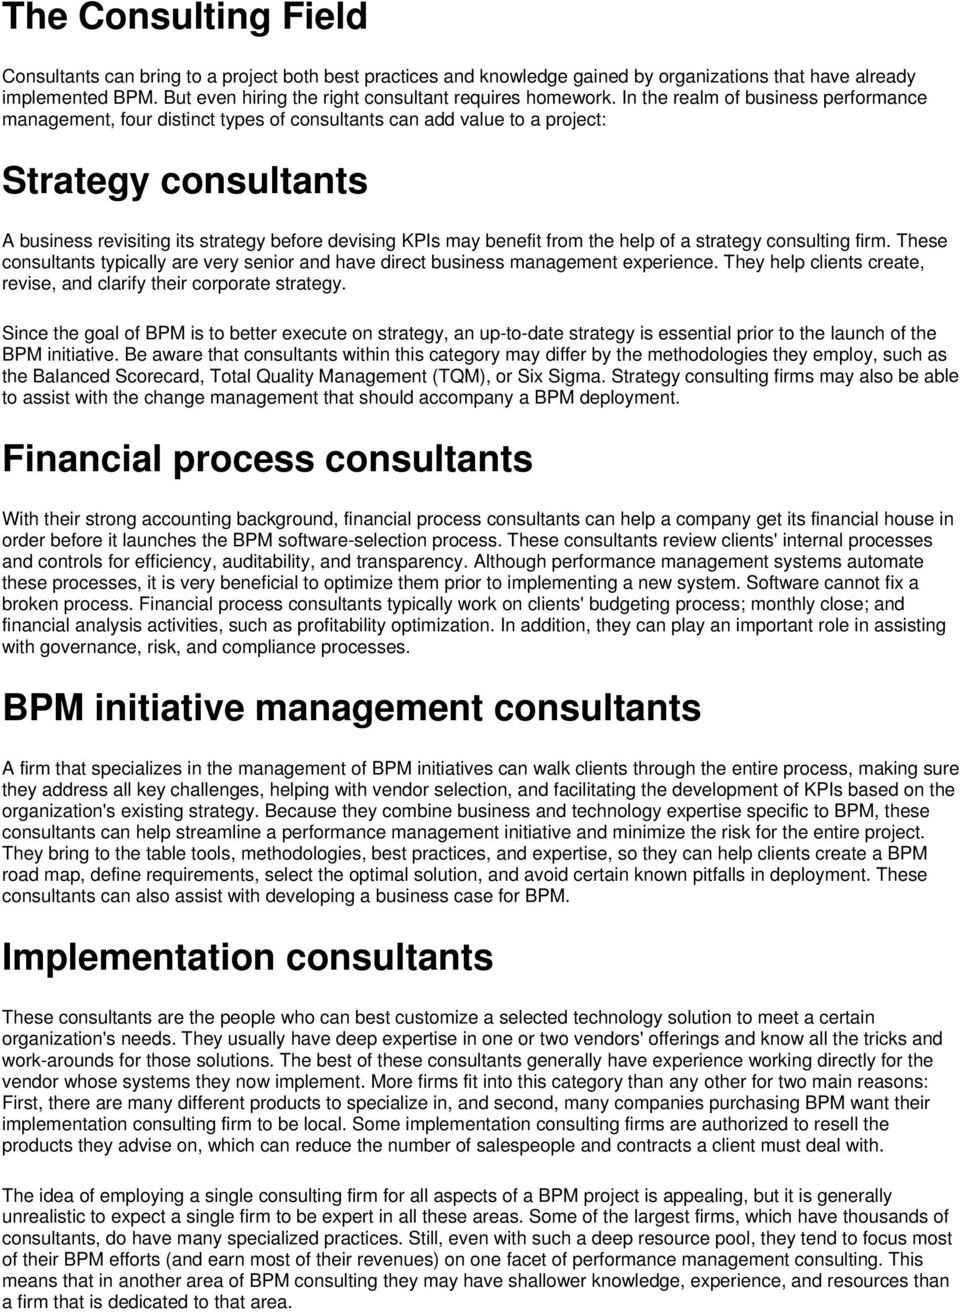 In the realm of business performance management, four distinct types of consultants can add value to a project: A business revisiting its strategy before devising KPIs may benefit from the help of a